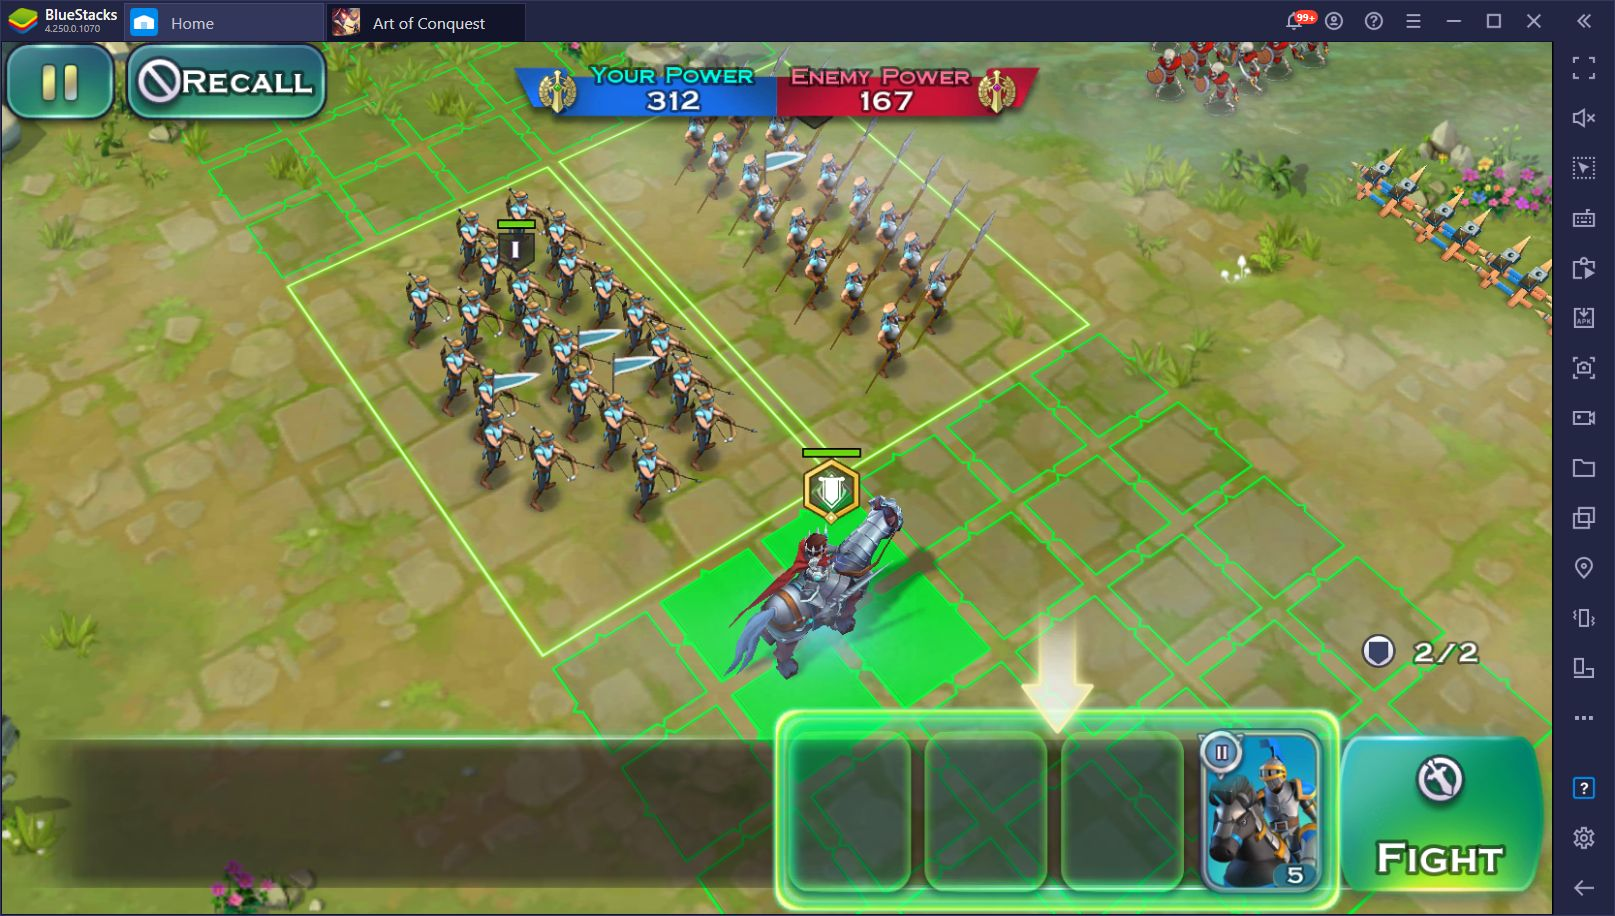 How to Play Art of Conquest on PC with BlueStacks